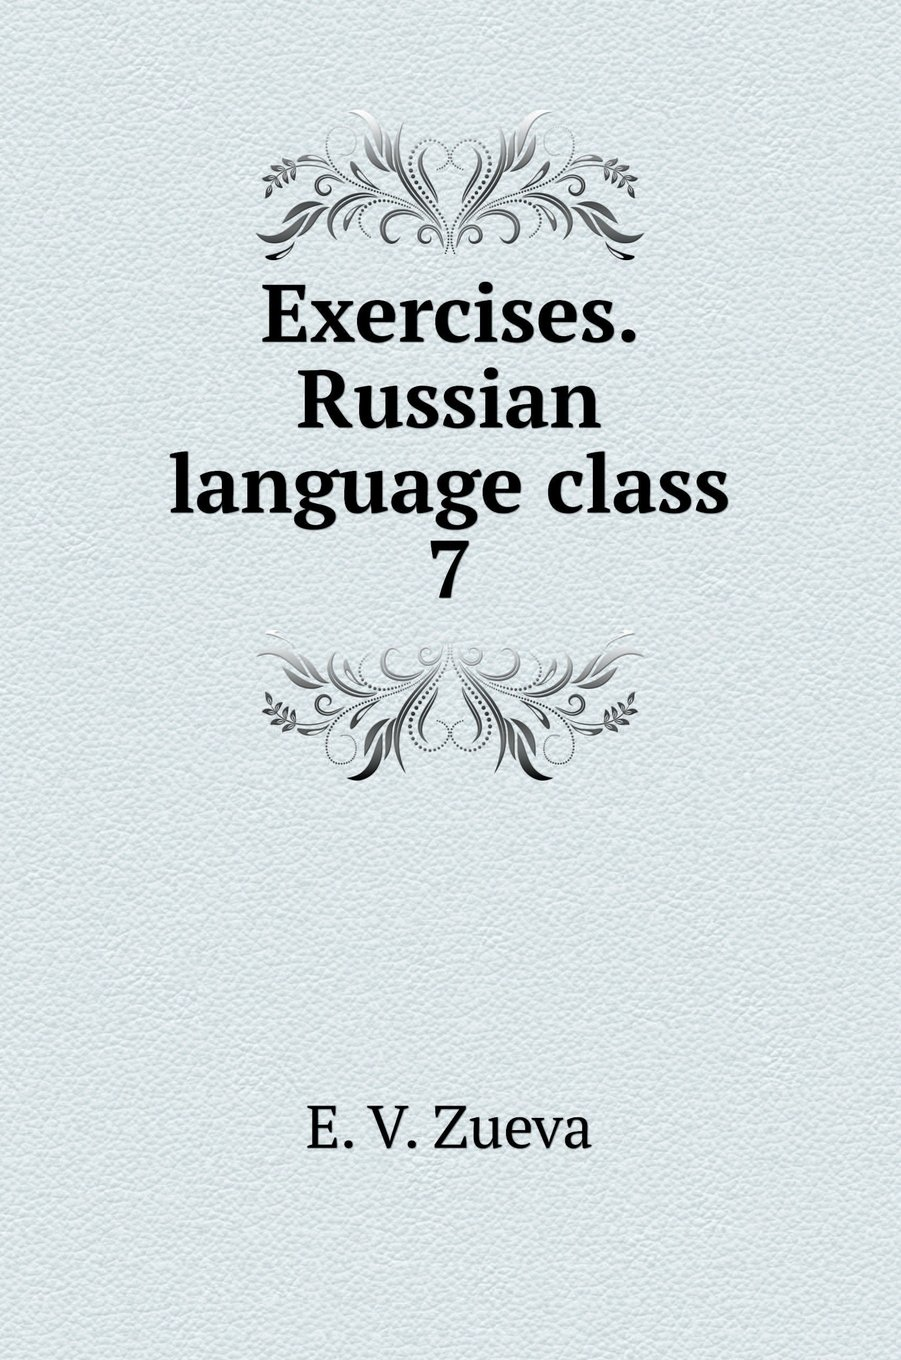 Download Exercises. Russian language class 7 (Russian Edition) pdf